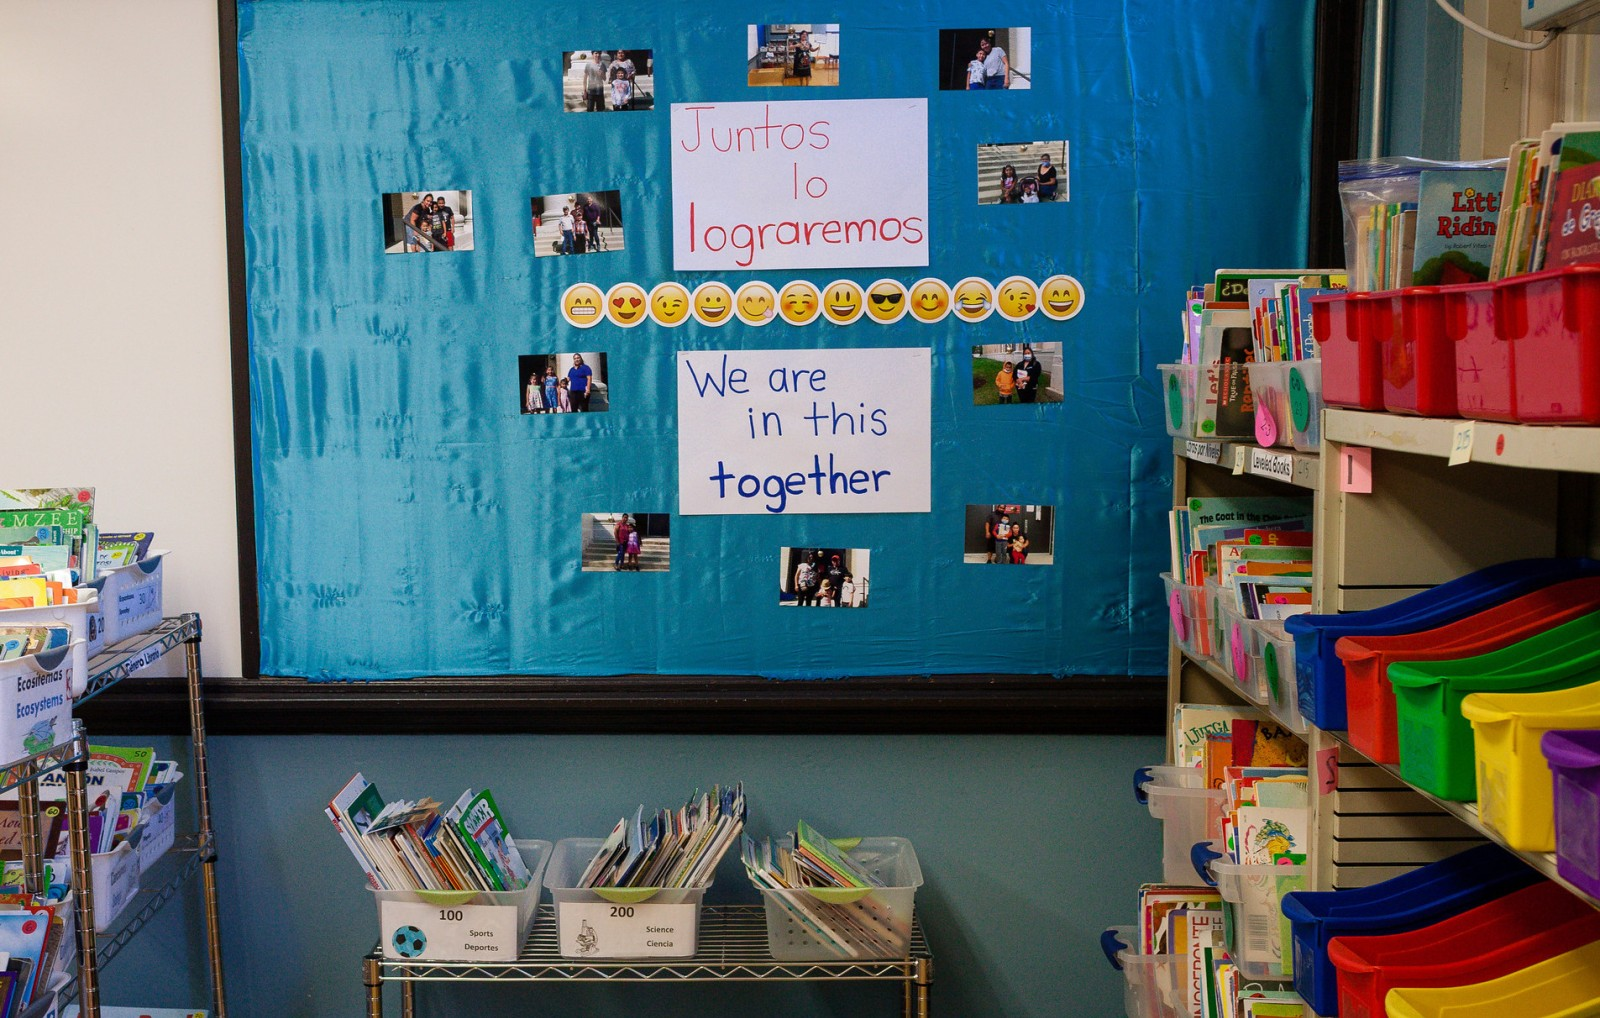 We Are In This Together sign